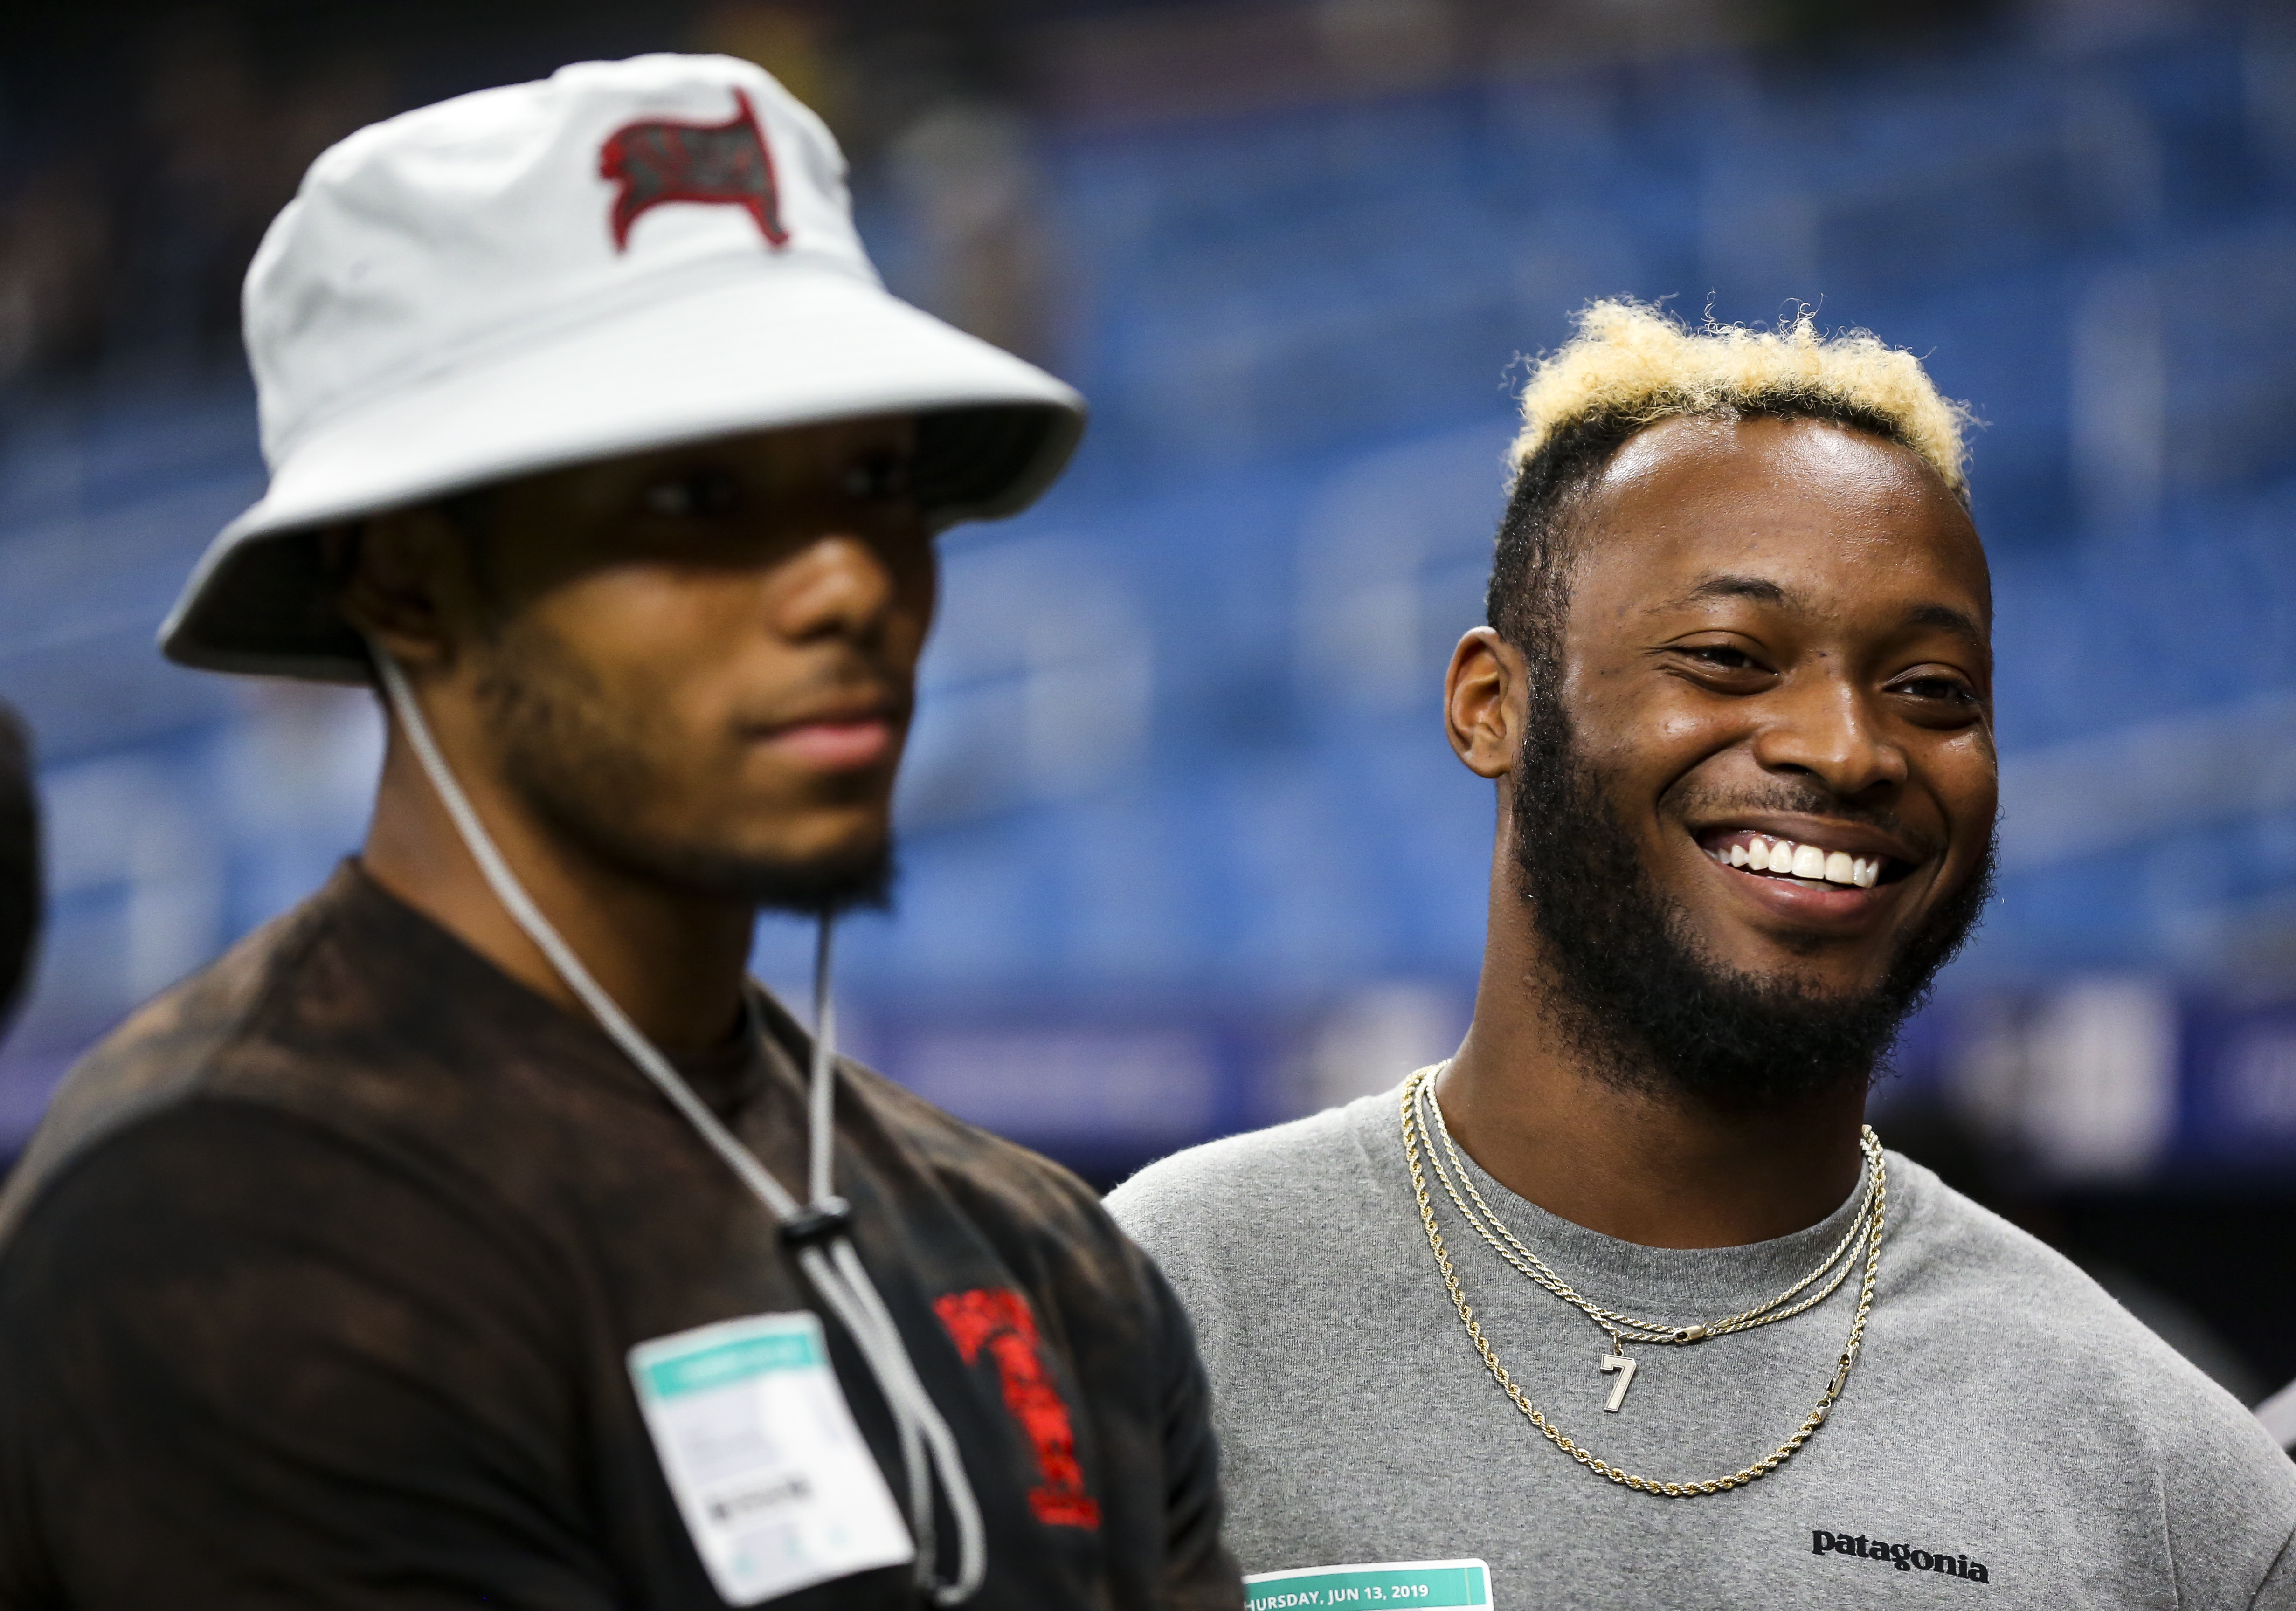 As Bucs rookies embark on first NFL training camp, they've already learned some valuable lessons